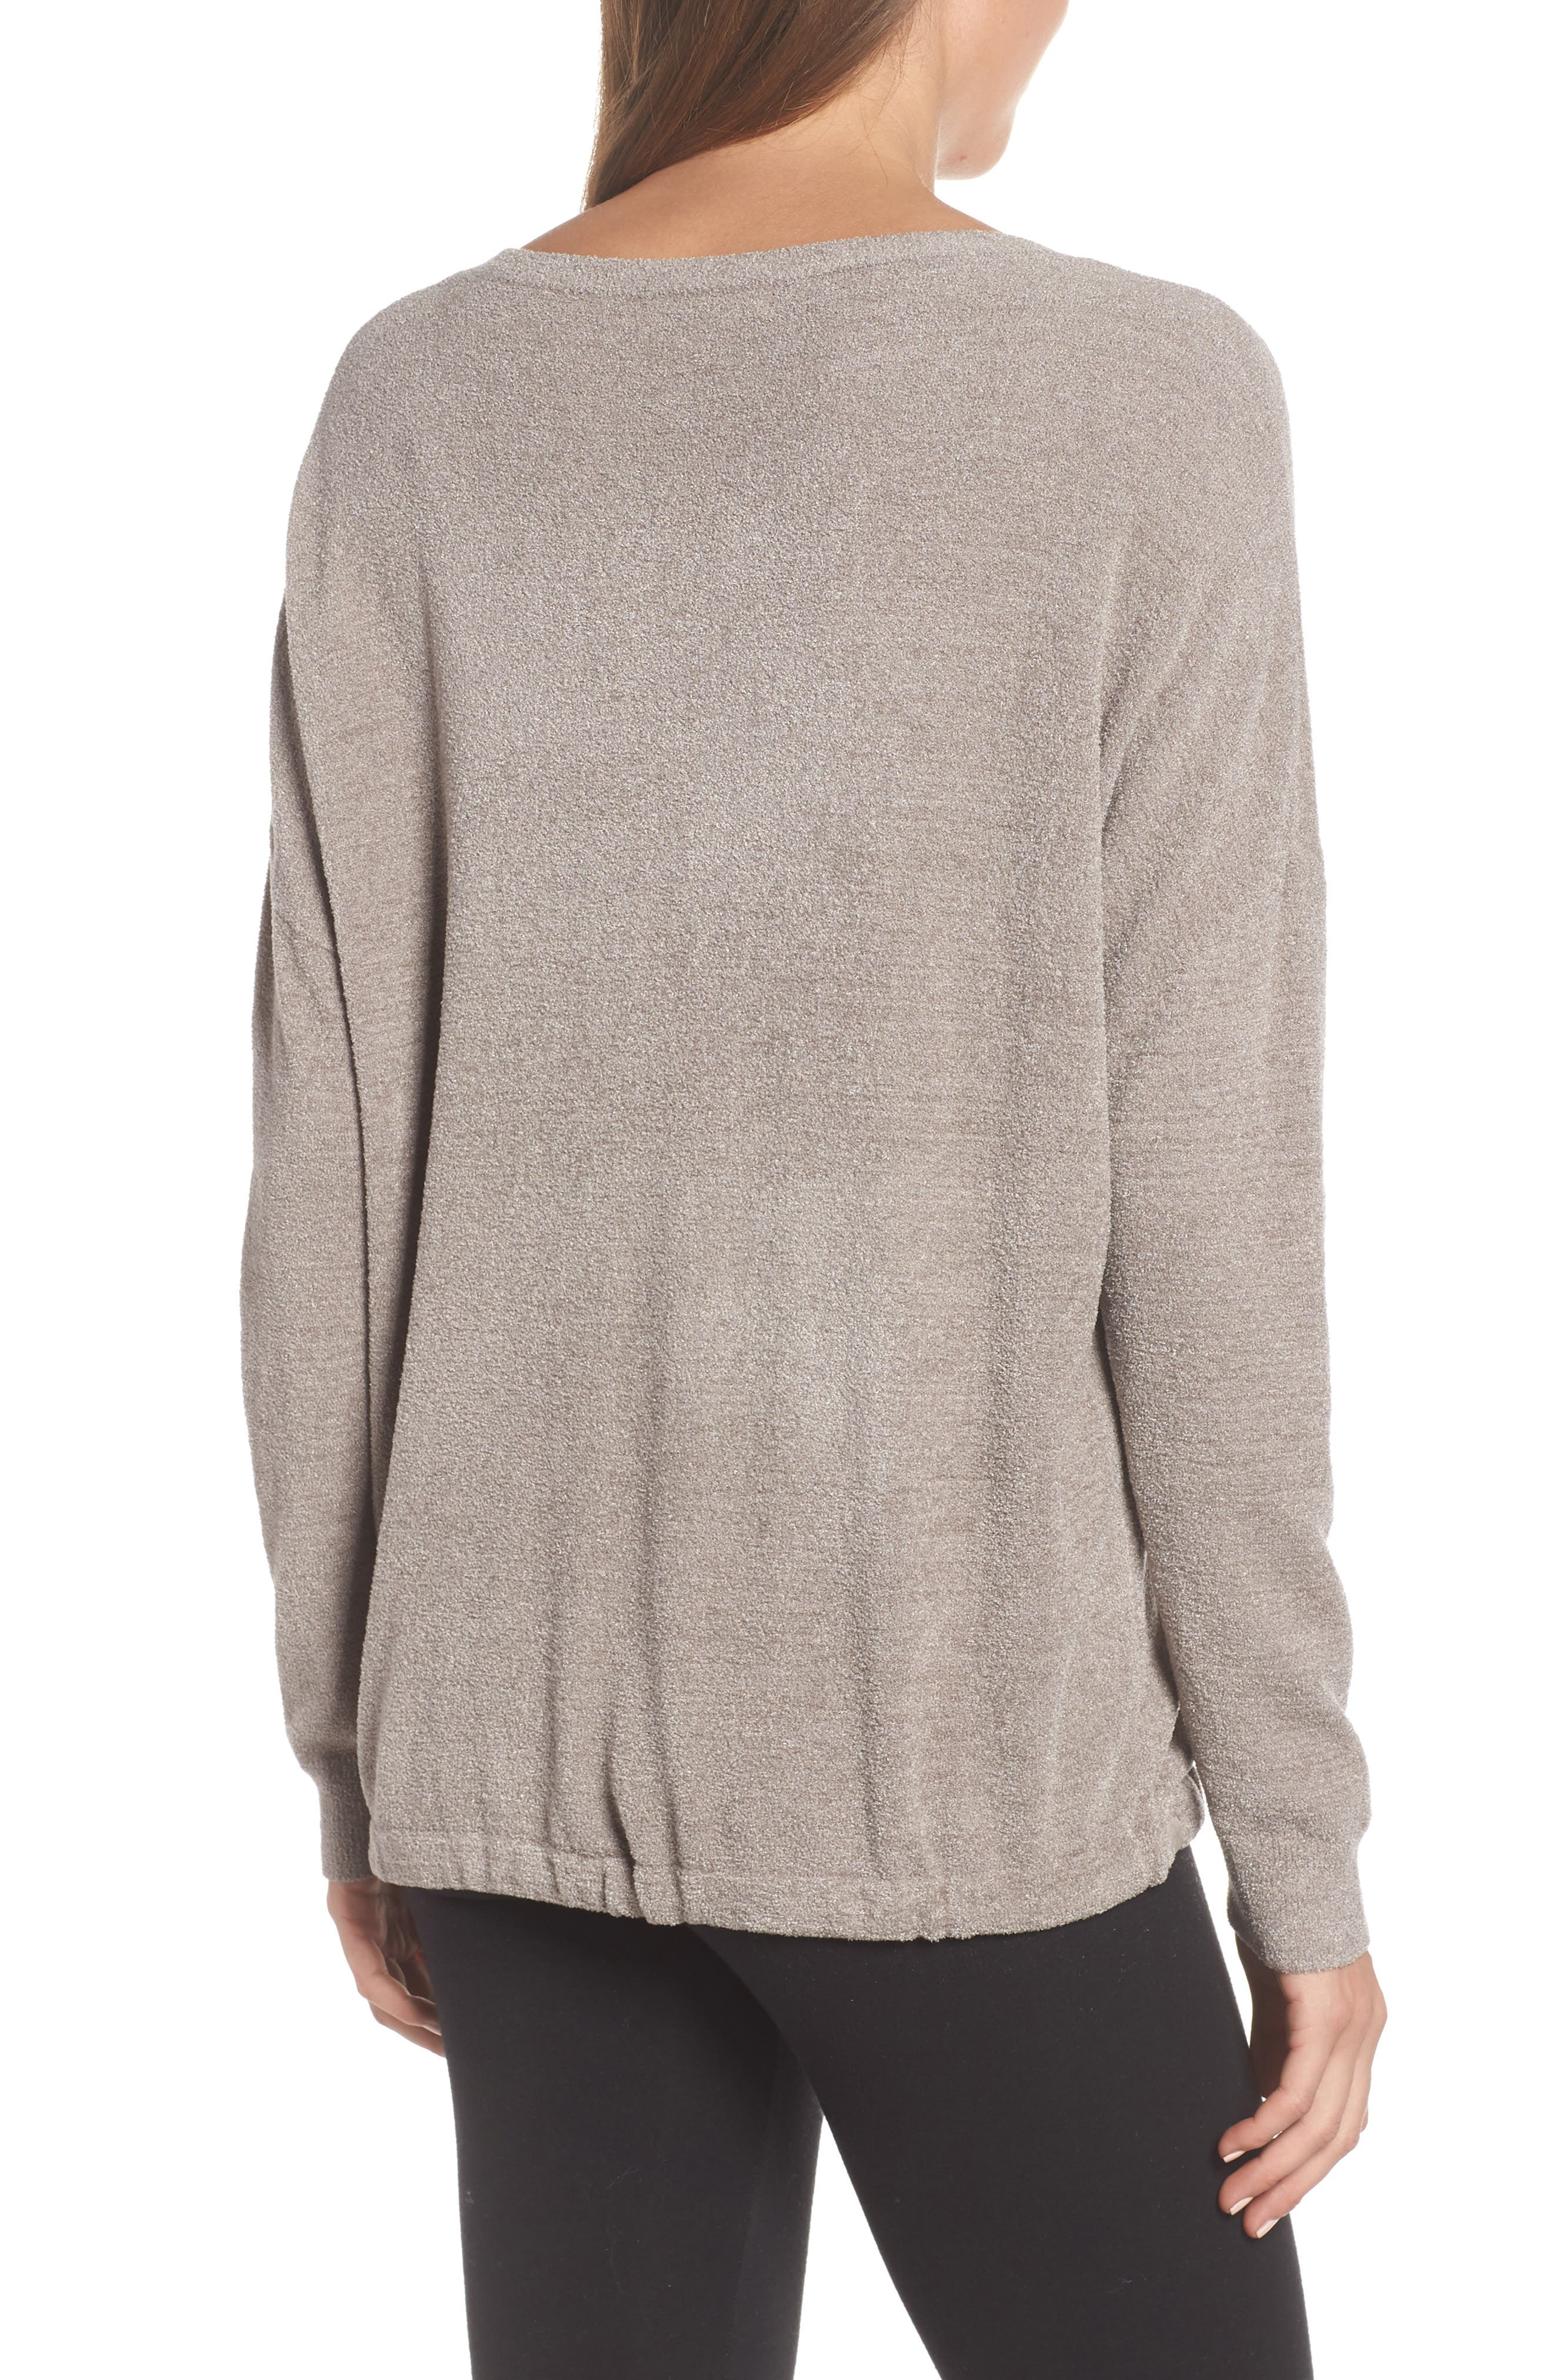 Cozychic Ultra Lite<sup>®</sup> Lounge Pullover,                             Alternate thumbnail 2, color,                             BEACH ROCK